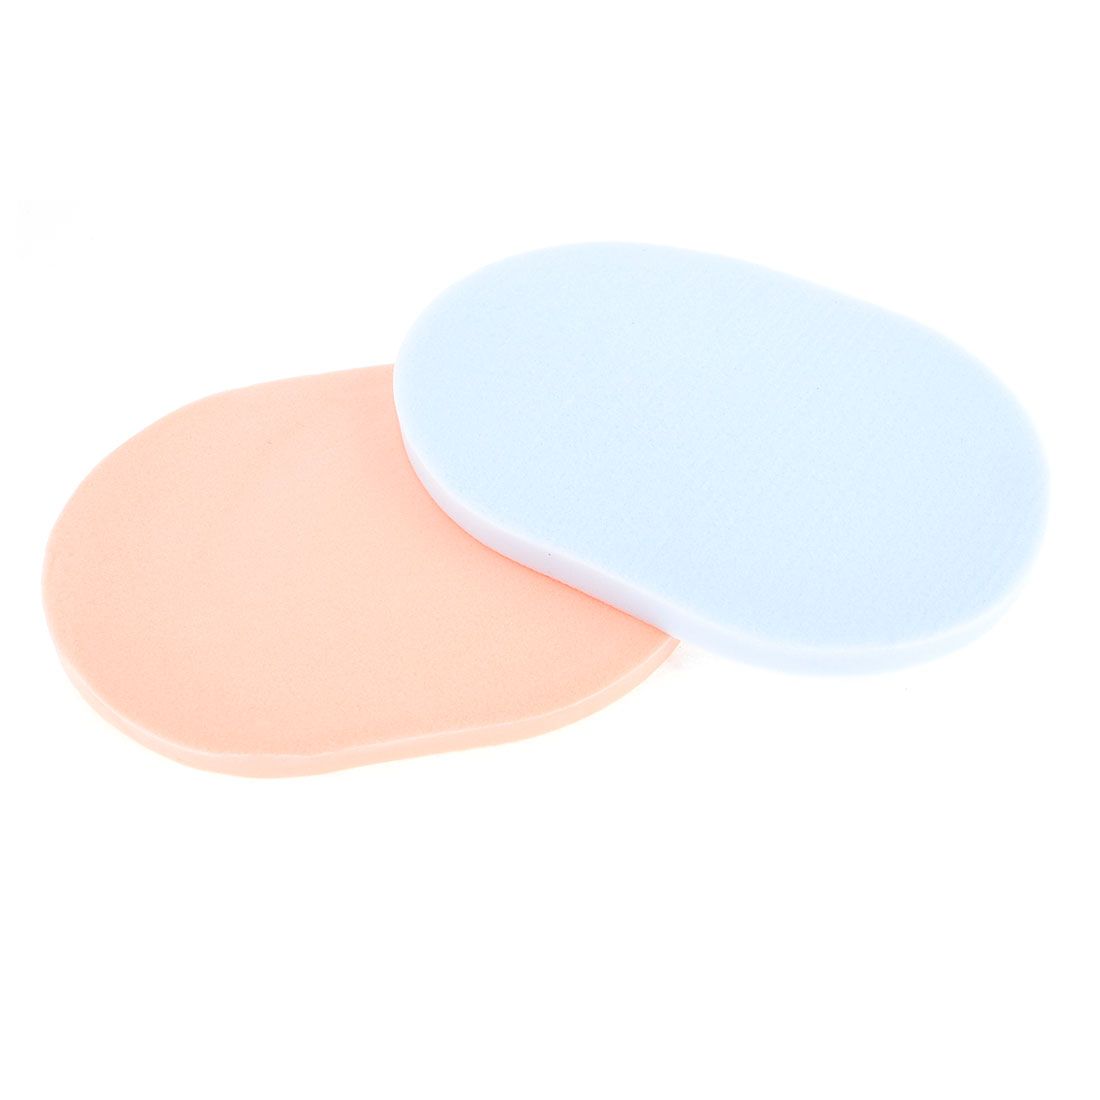 2pcs Pale Apricot Light Blue Oval Sponge Facial Pad Cleaning Powder Puff